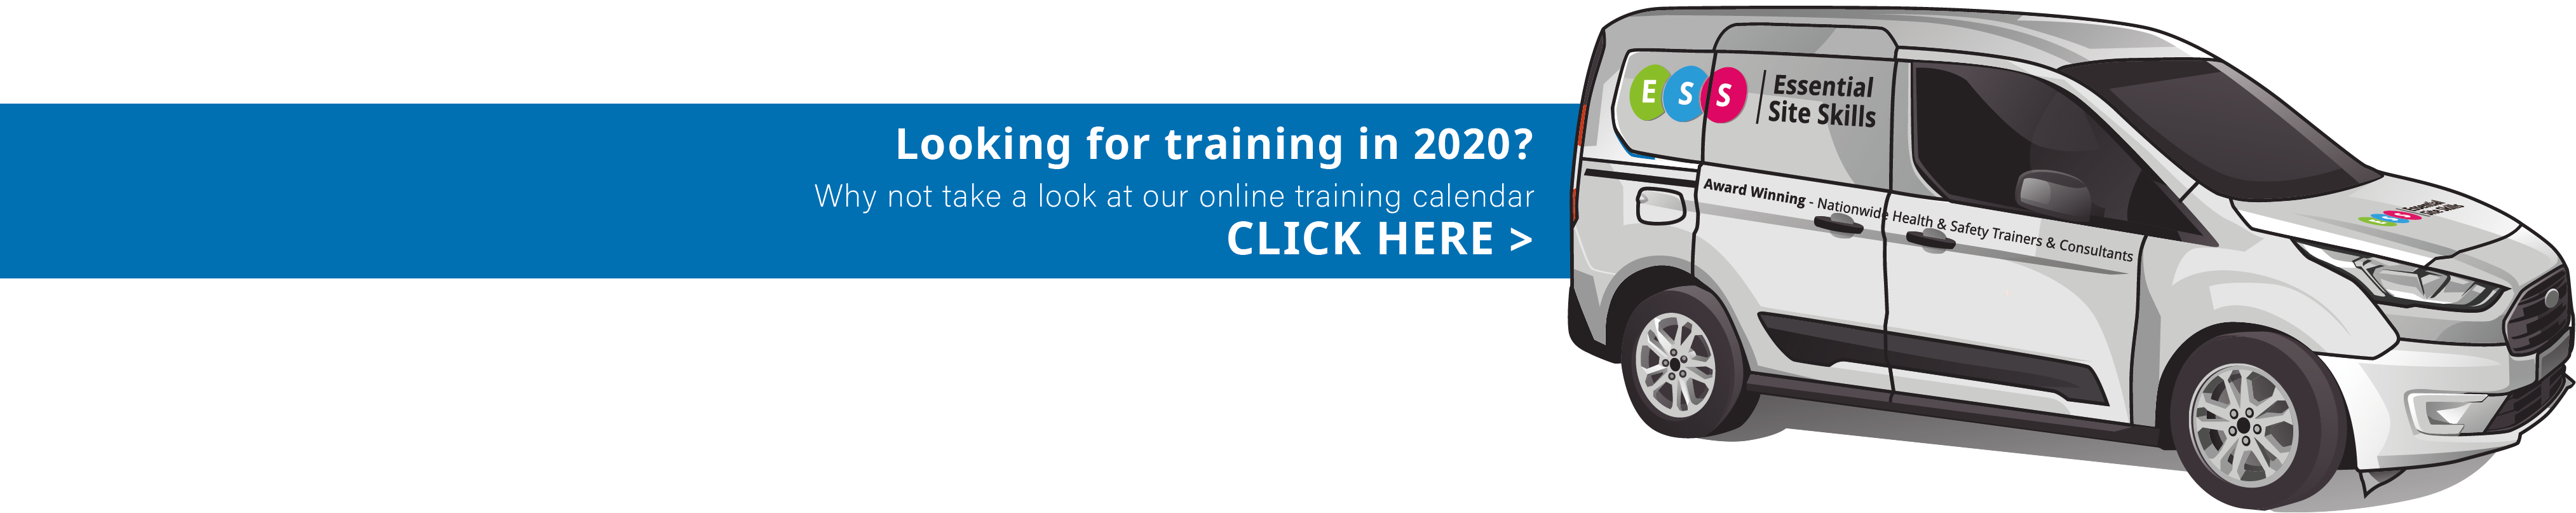 www.essentialsiteskills.co.uk/training-calendar